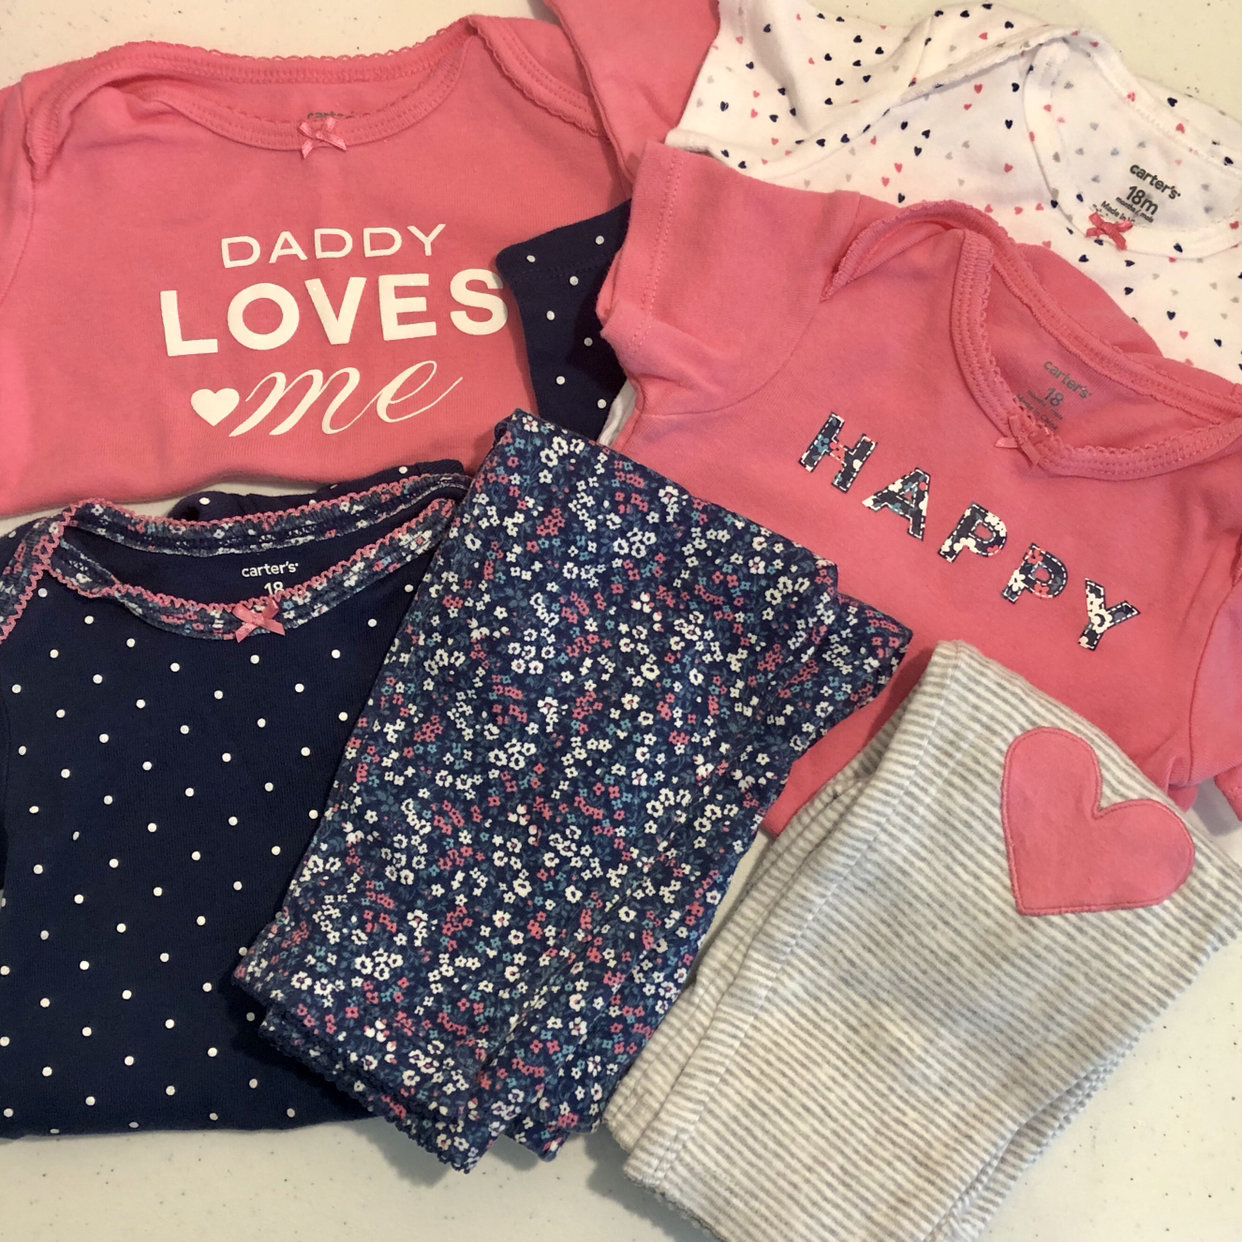 Boys Clothing 6-7 Years Build A Bundle Multi Listing Tops Jeans etc /<B6-7